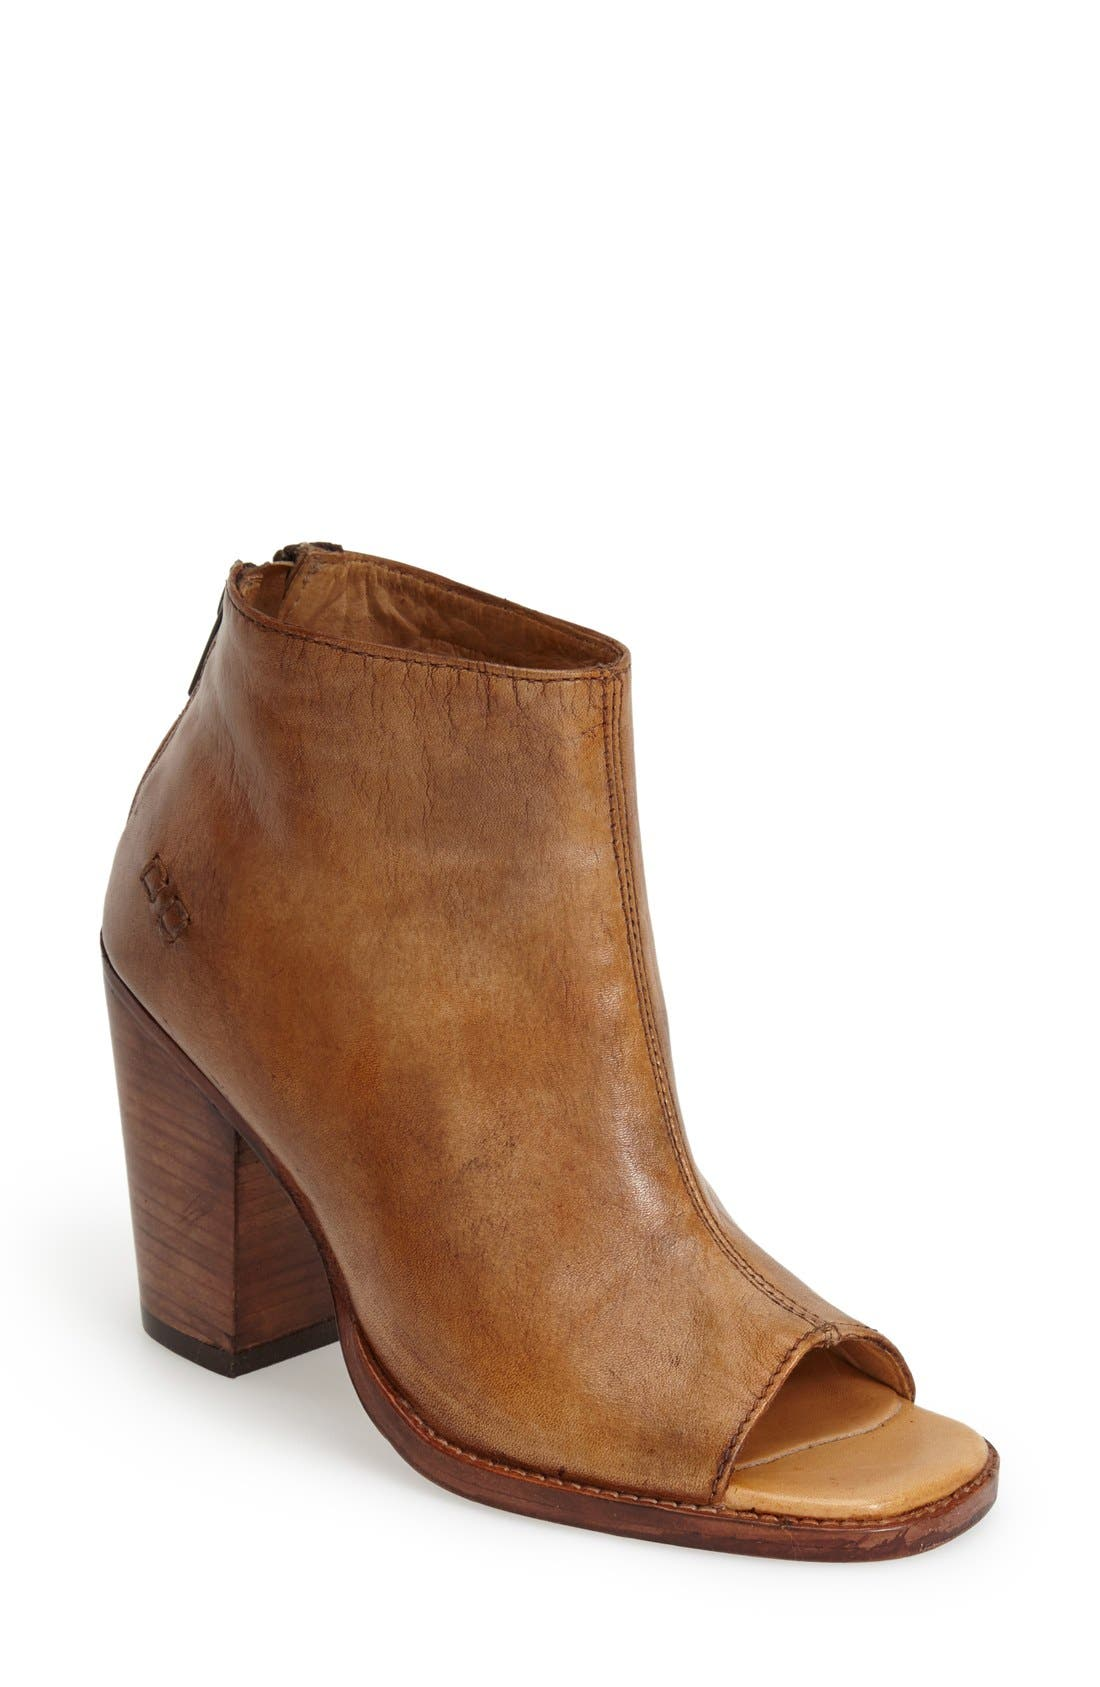 BED STU 'Onset' Peep Toe Bootie